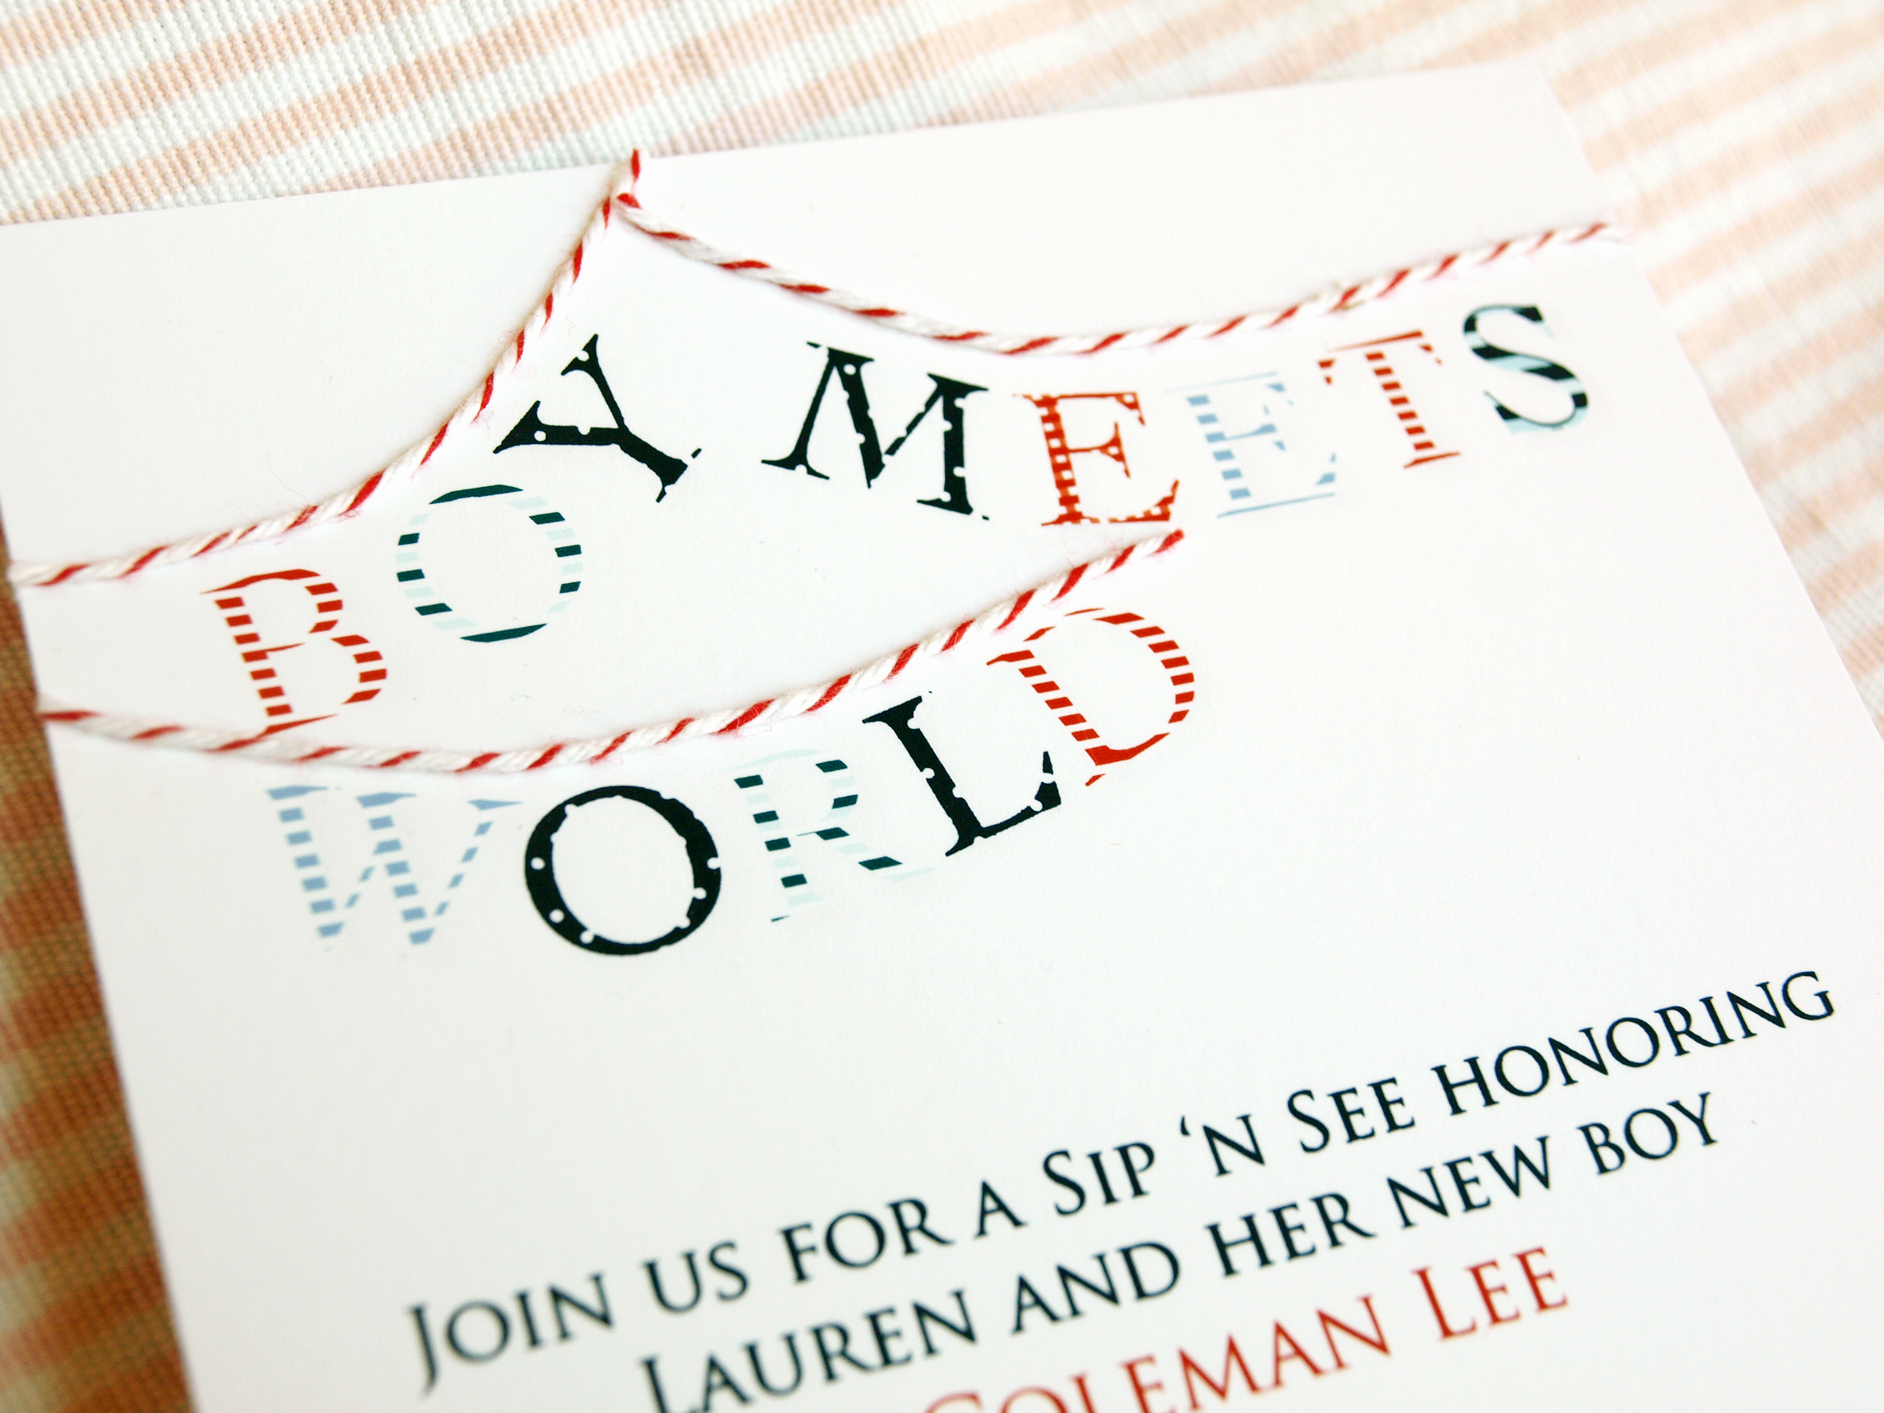 Sip N See Invitation Wording Inspirational Pink Peppermint the Blog